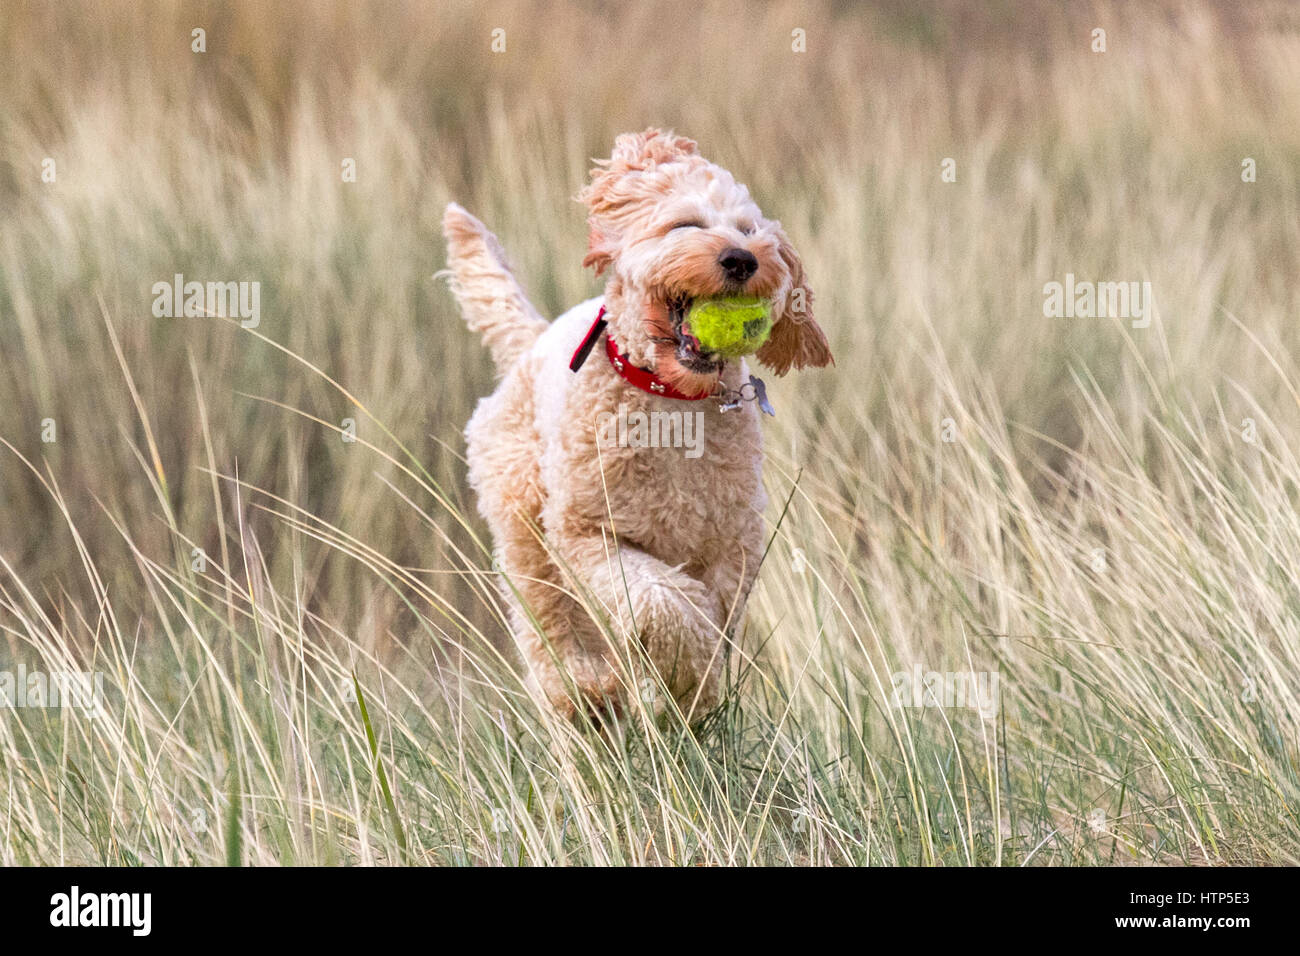 Dogs day out, Ainsdale, Merseyside. 14th March 2017. One year Cockapoo 'Ruby' is having the best day ever - Stock Image